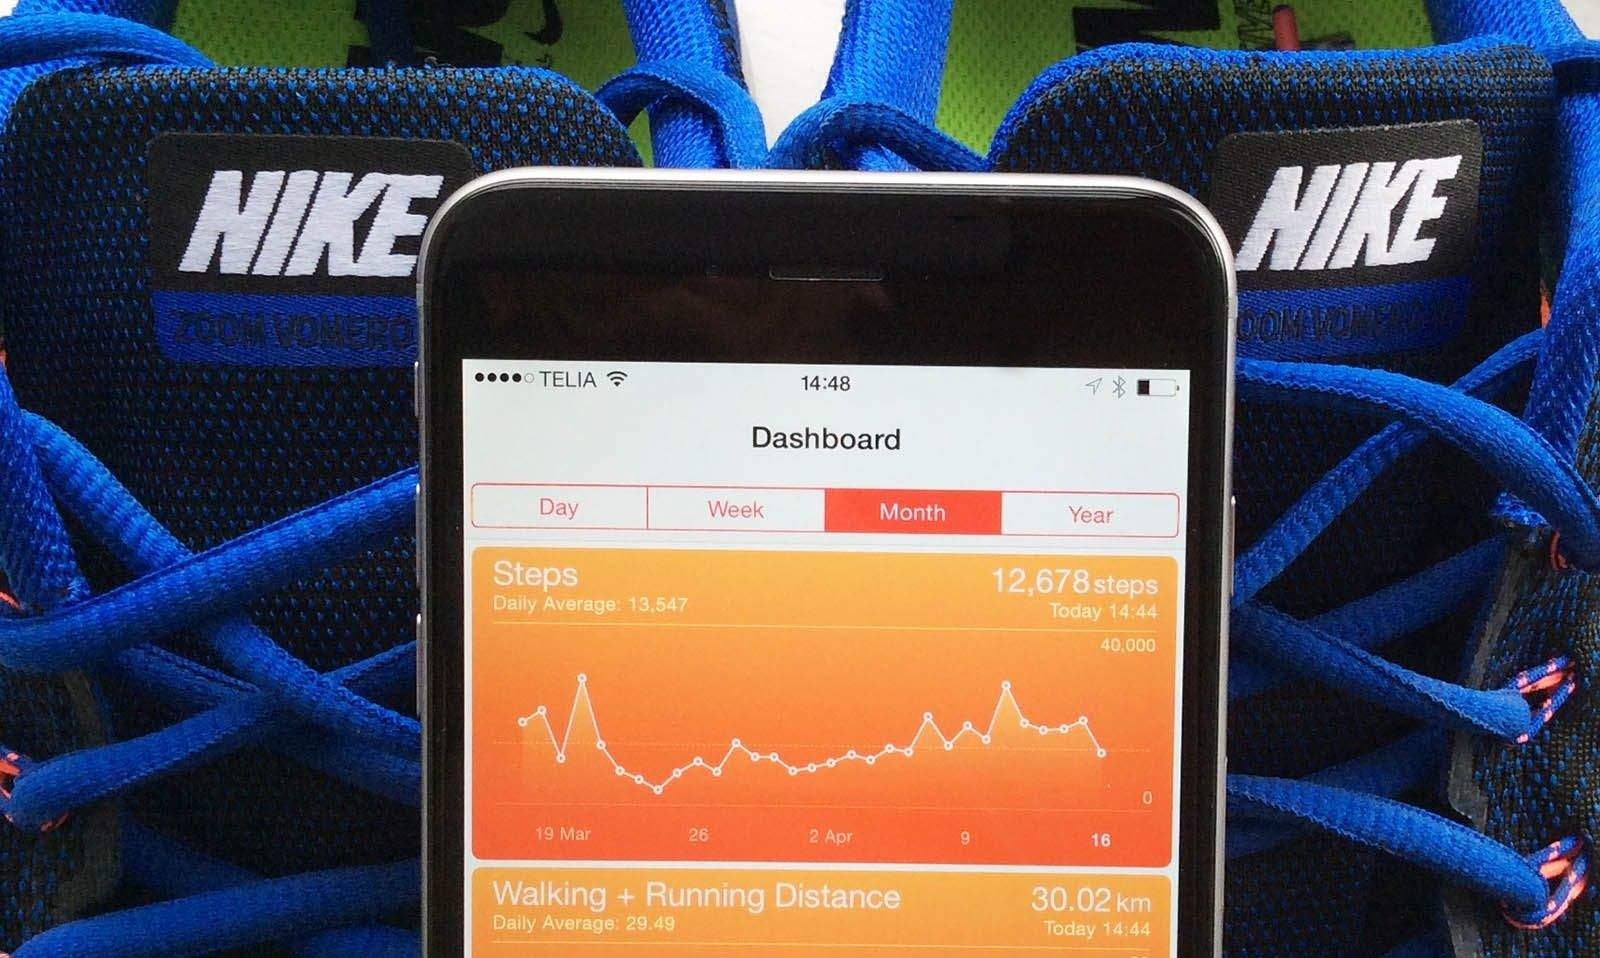 Where to next for Nike+ runners? Photo: Graham Bower/Cult of Mac